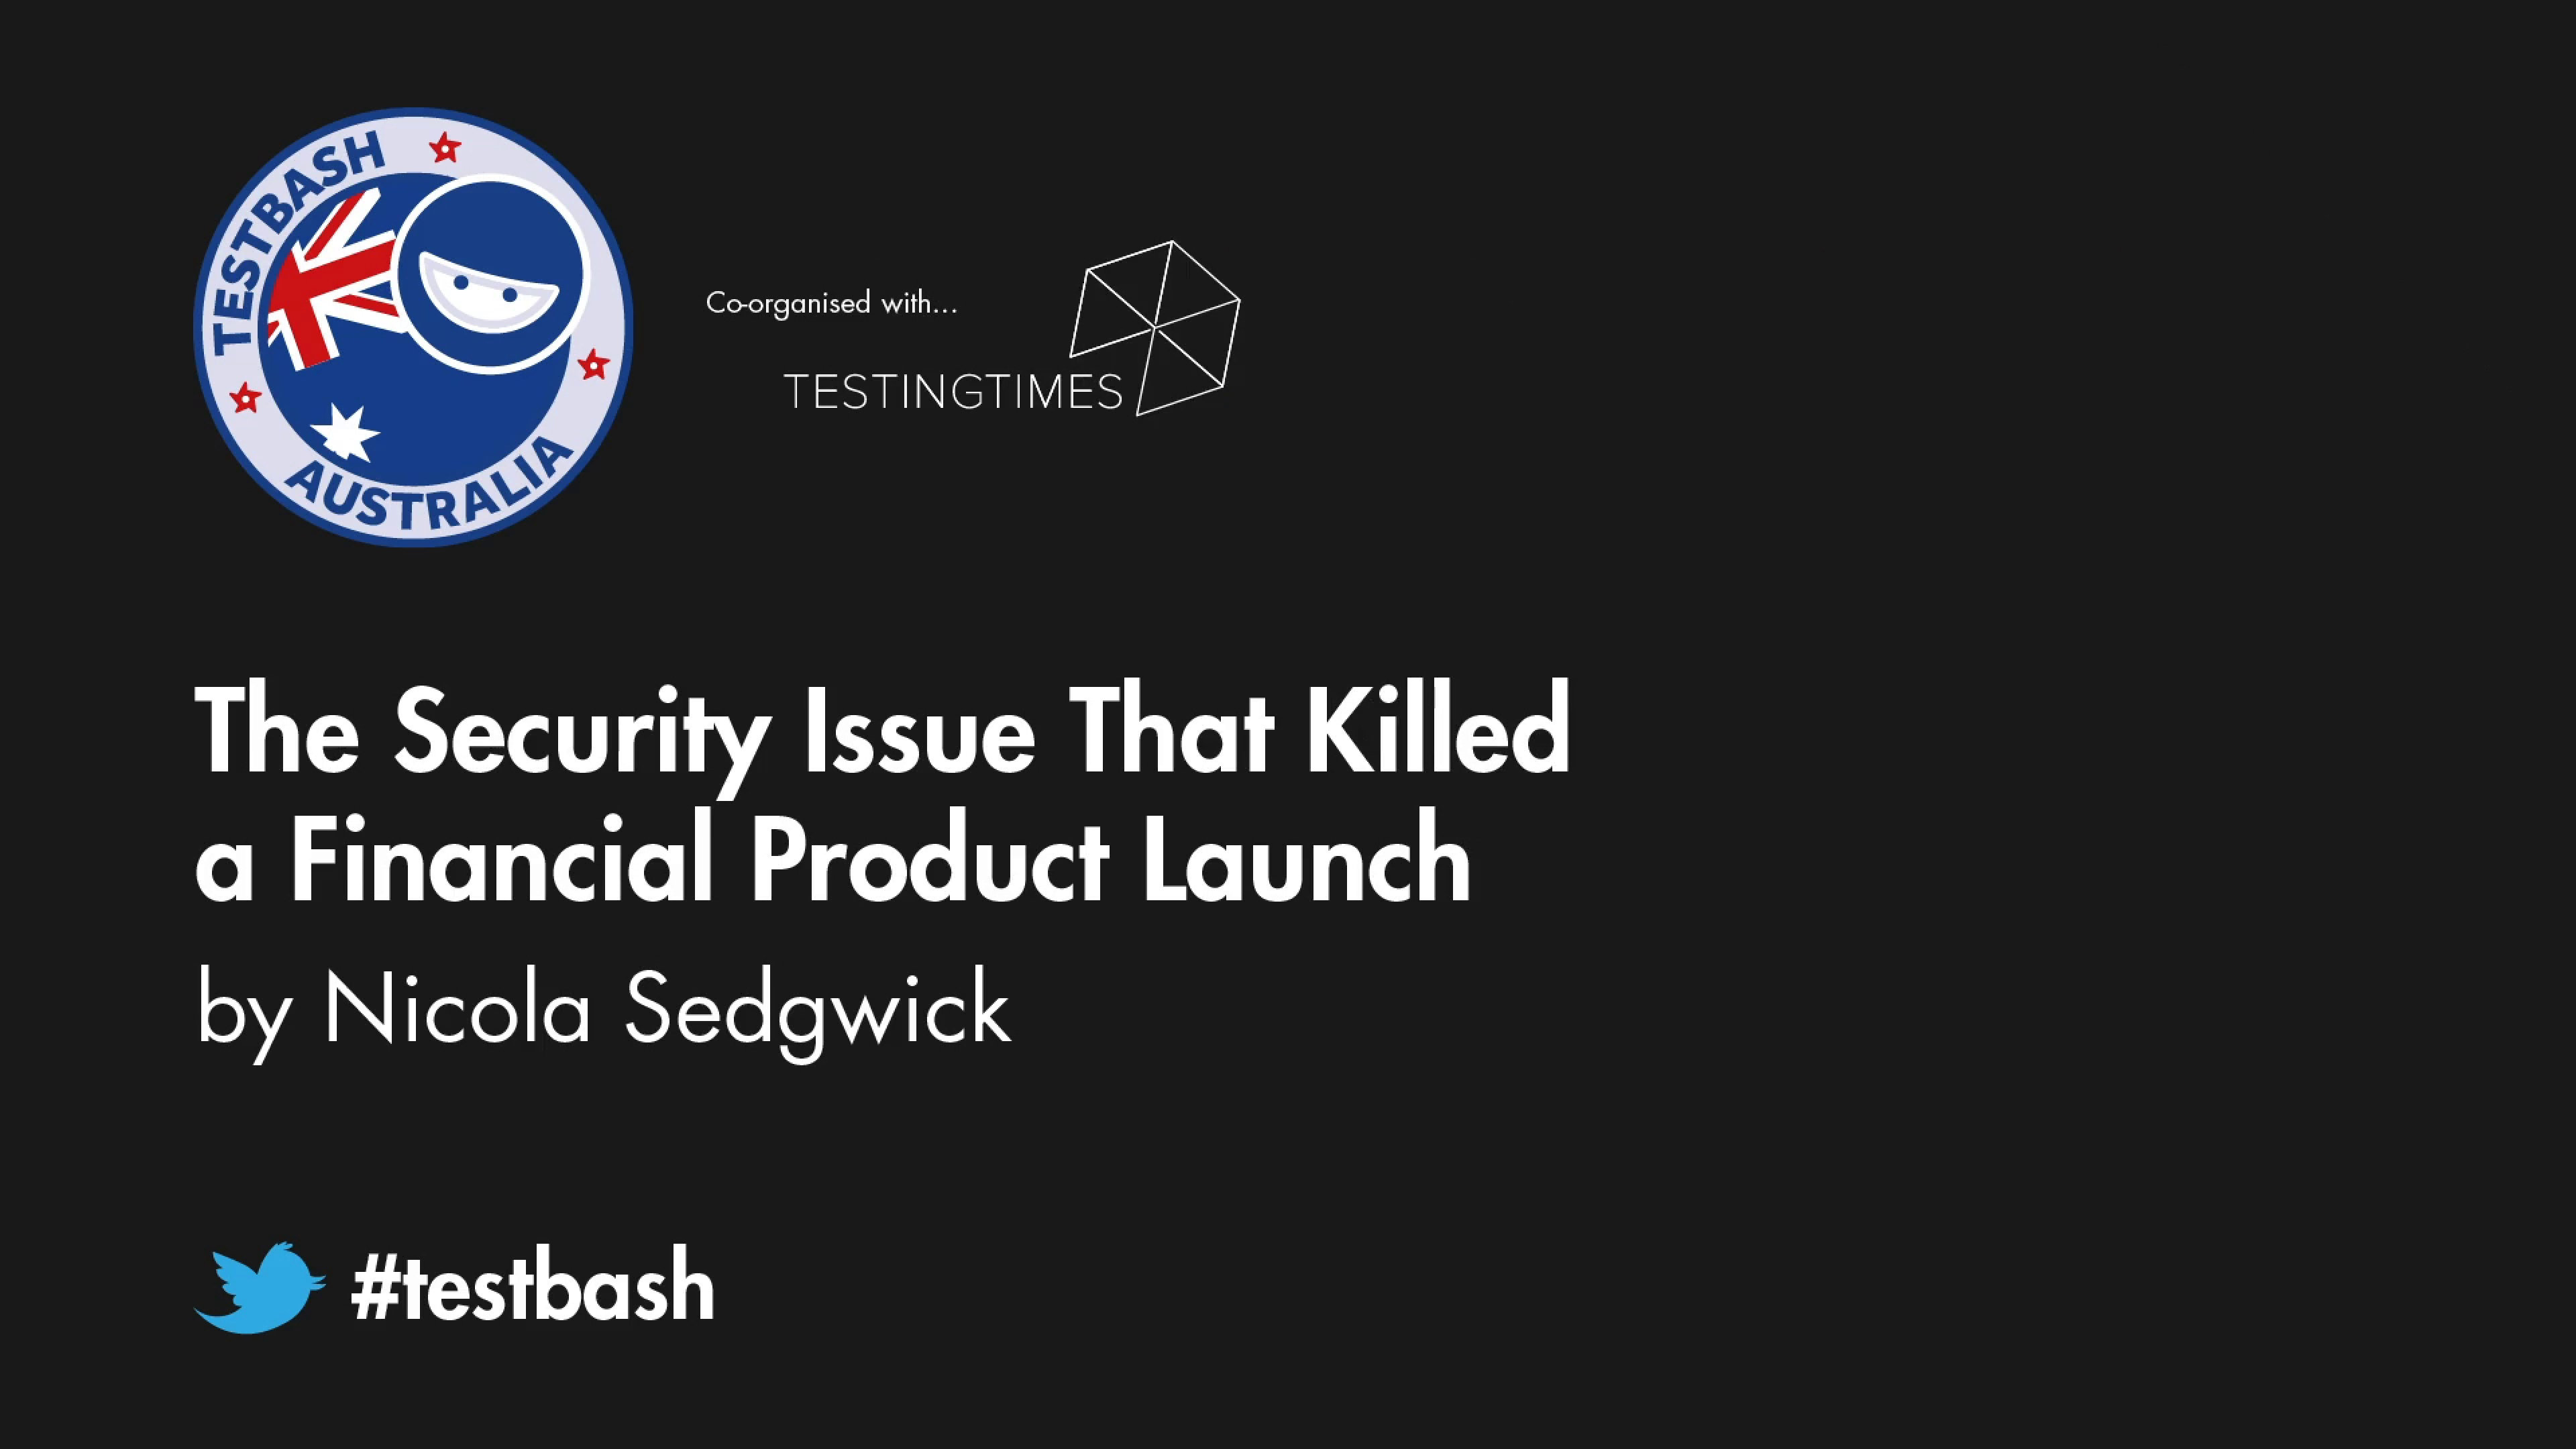 The Security Issue That Killed a Financial Product Launch - Nicola Sedgwick